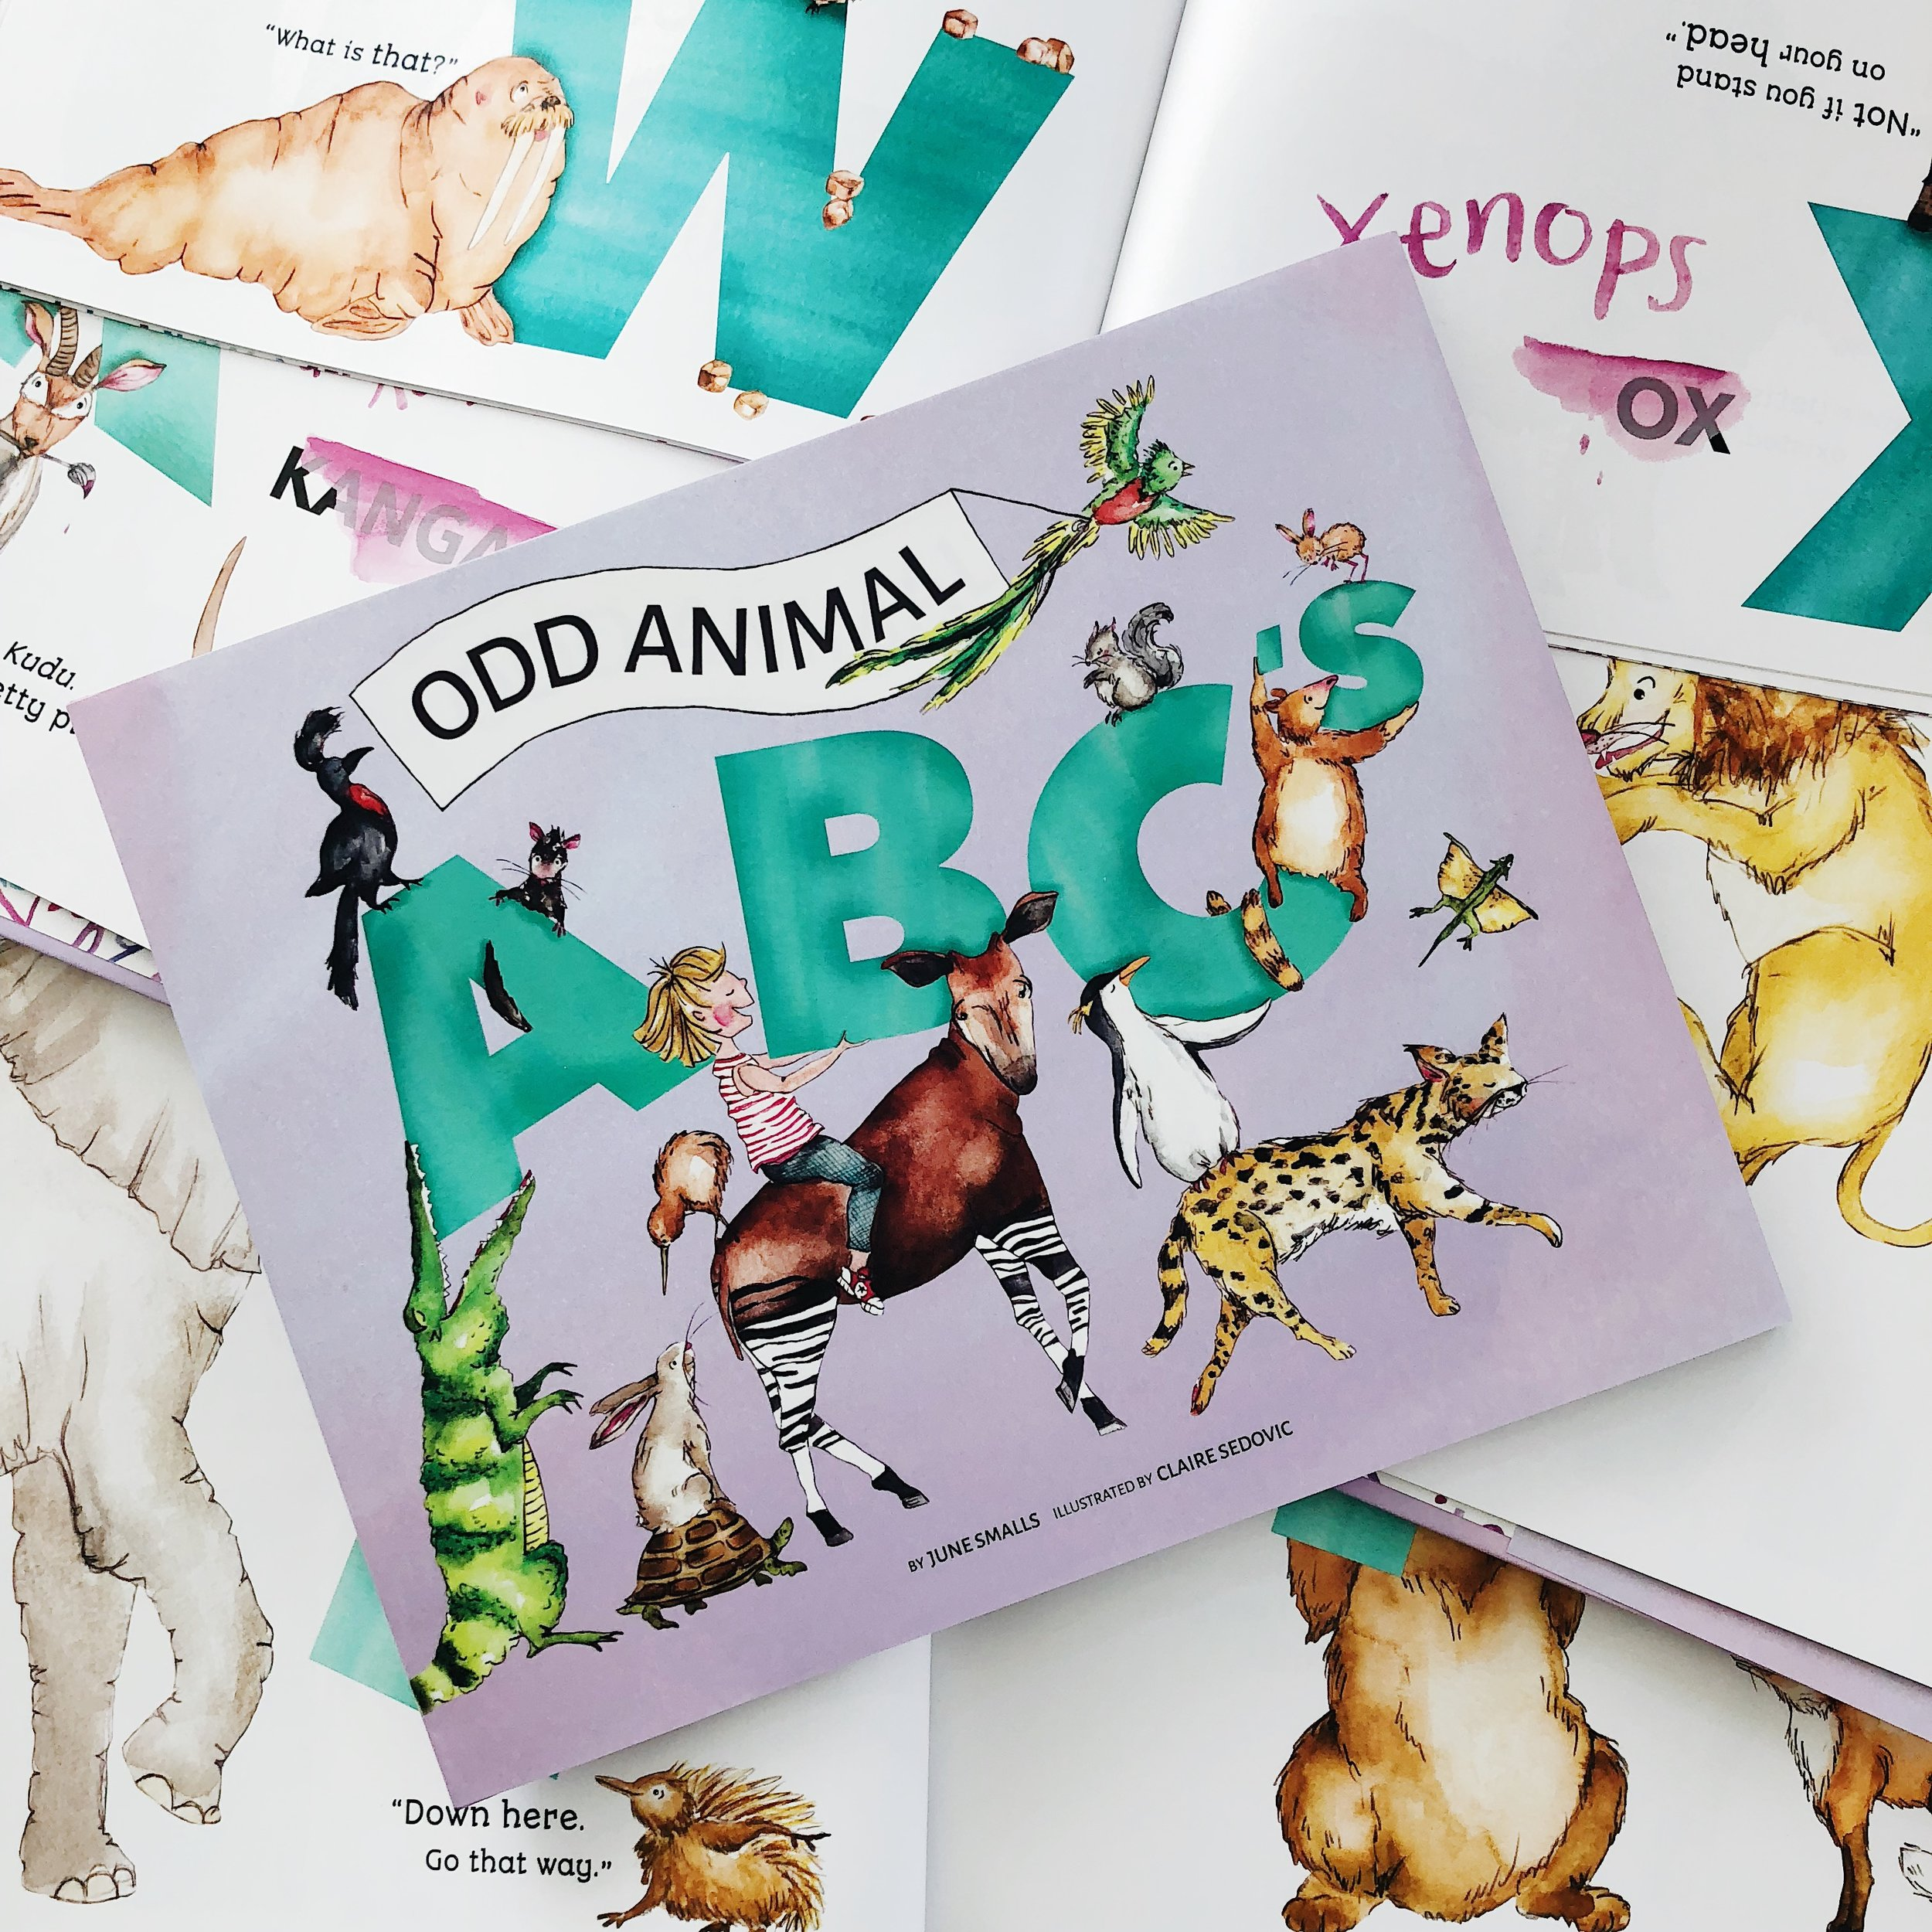 Odd Animal ABC's   written by June Smalls and illustrated by Claire Sedovic